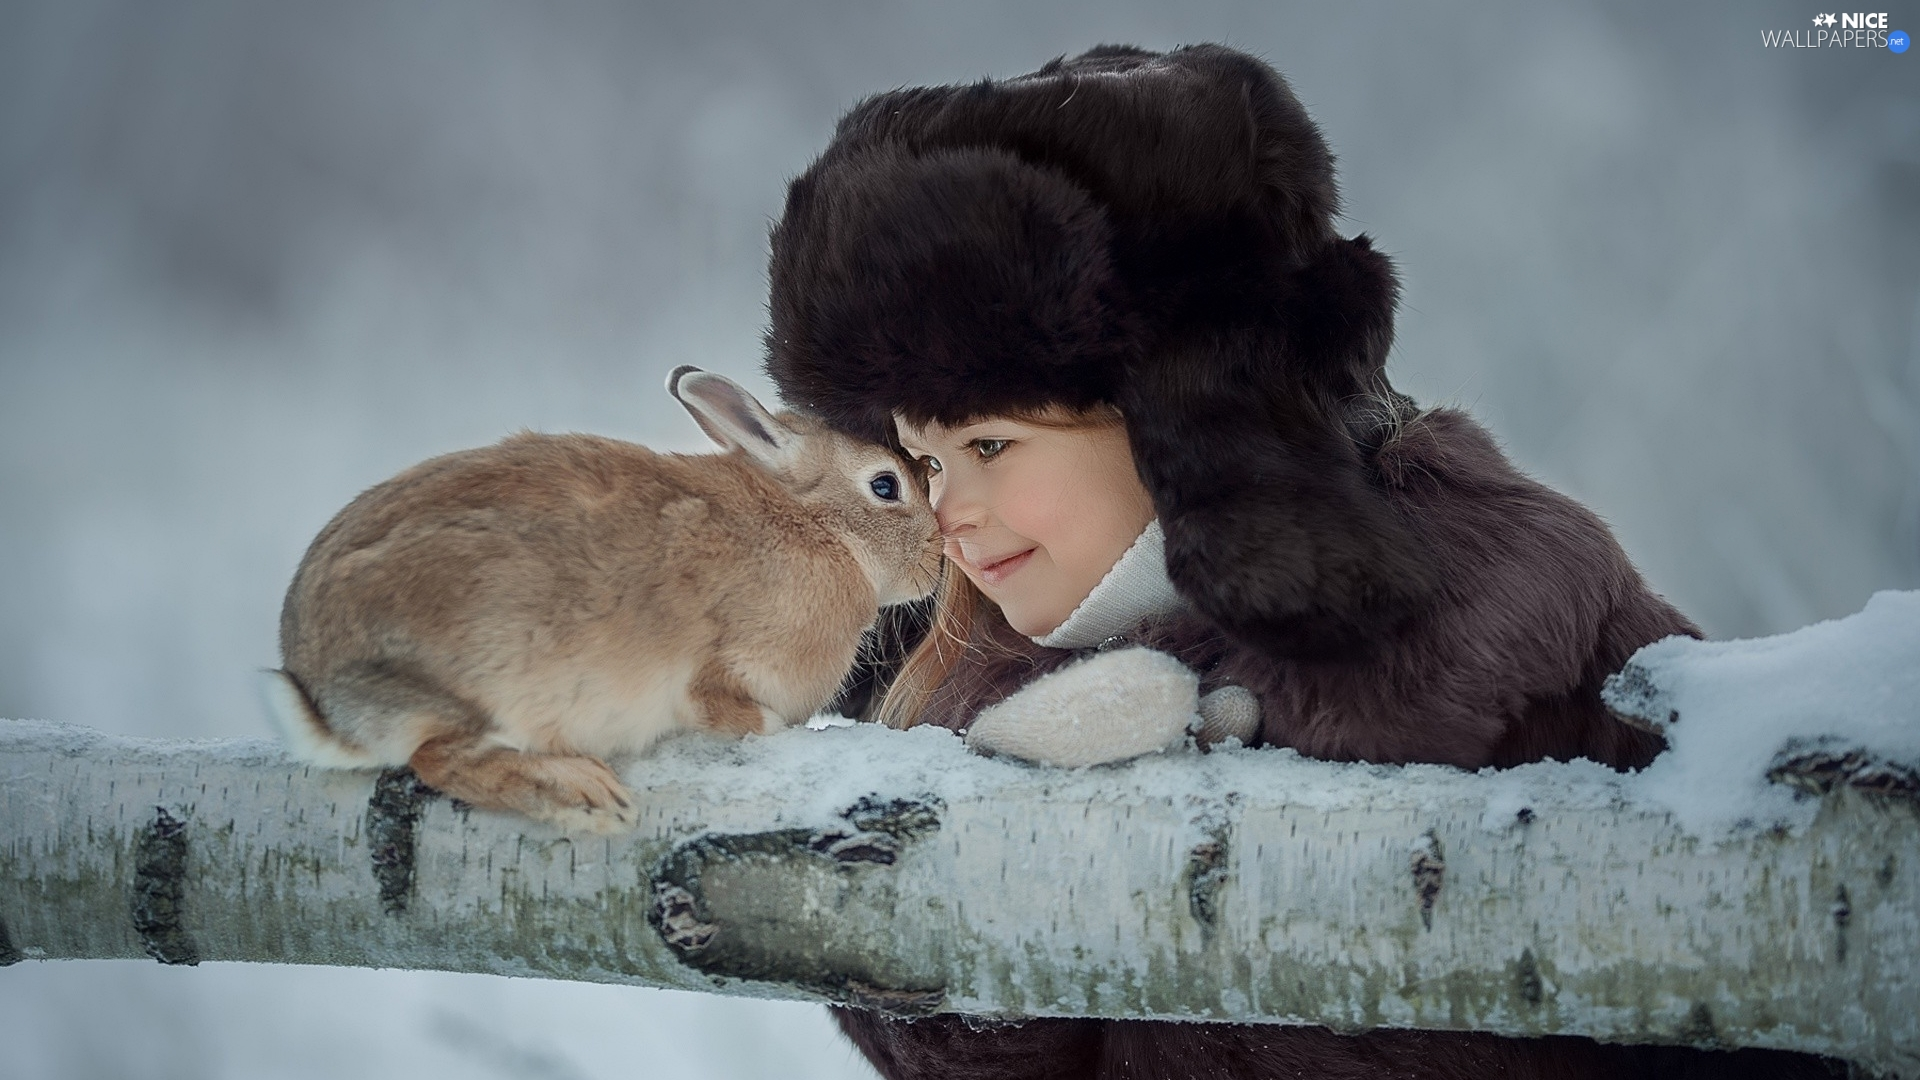 Rabbit, branch, Hat, Fur, girl